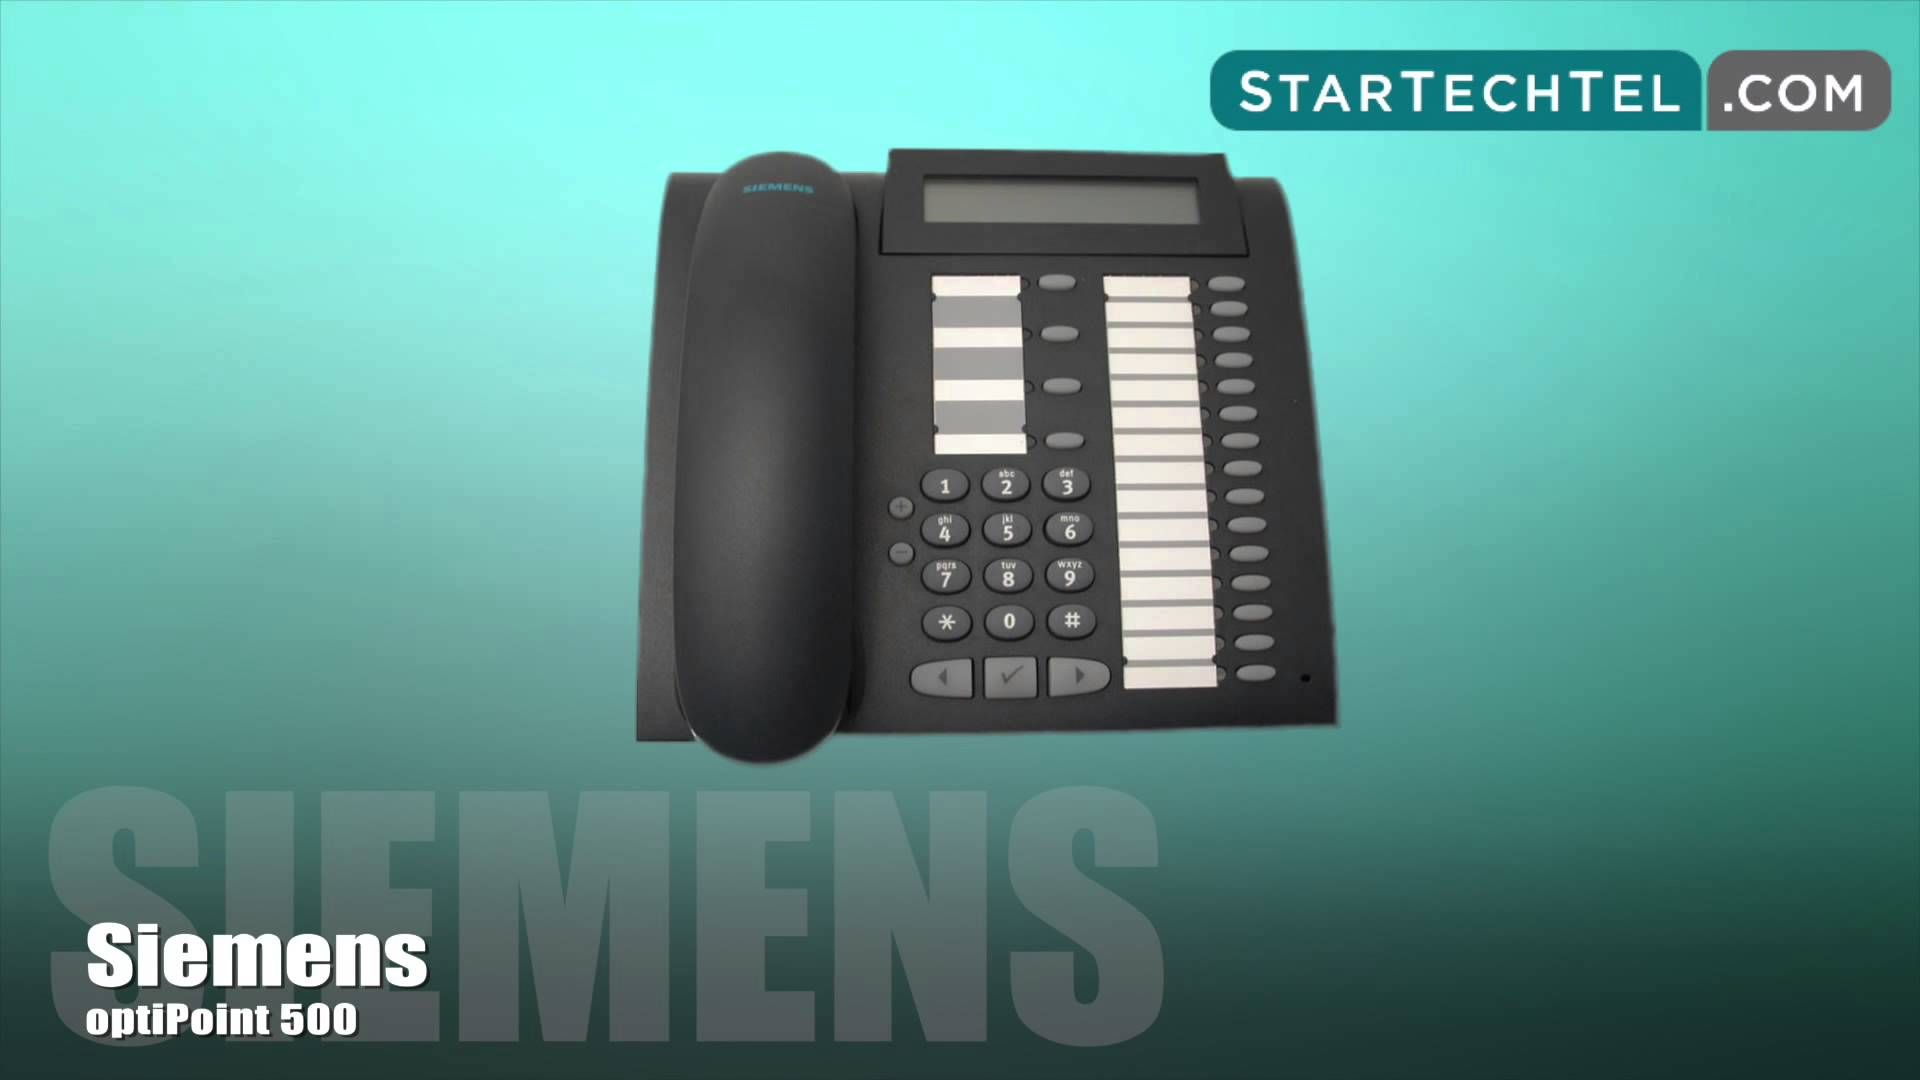 How To Configure Your Mailbox Password On The Siemens